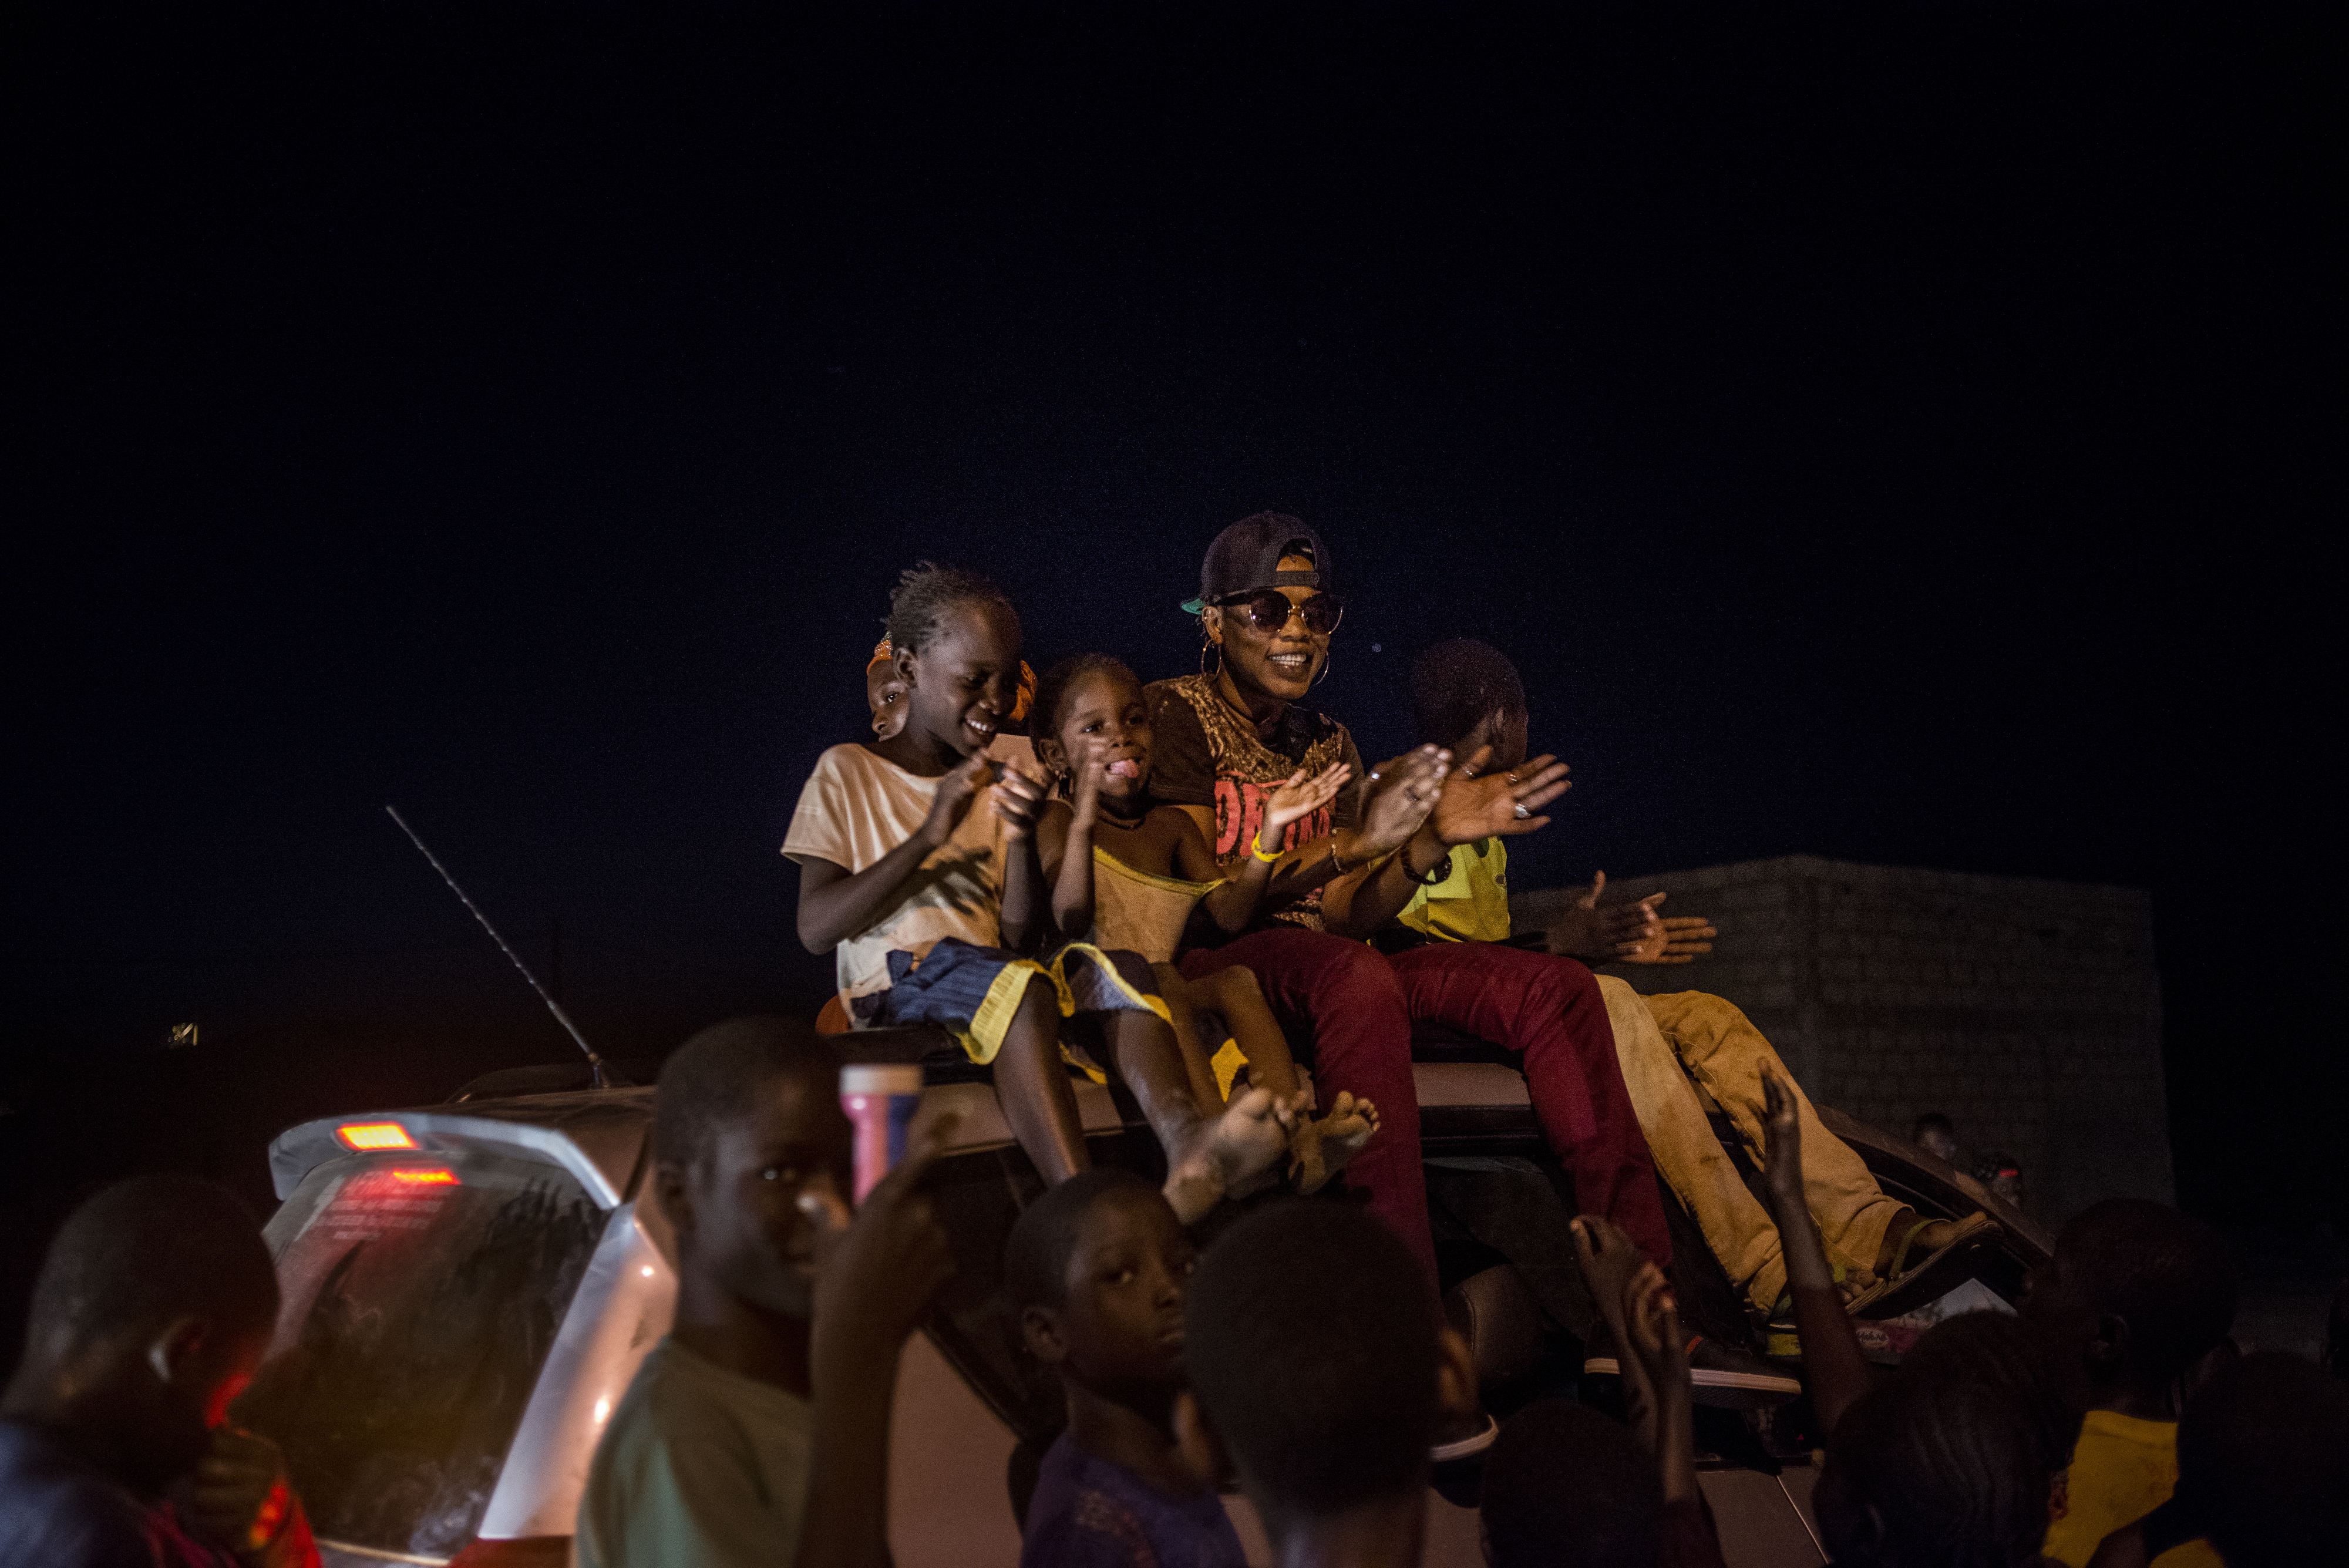 Children from the town join Ami atop a car during her processional around town; young men blasted her music from loudspeakers, announcing her arrival on May 20, 2017 in Macina, Mali.